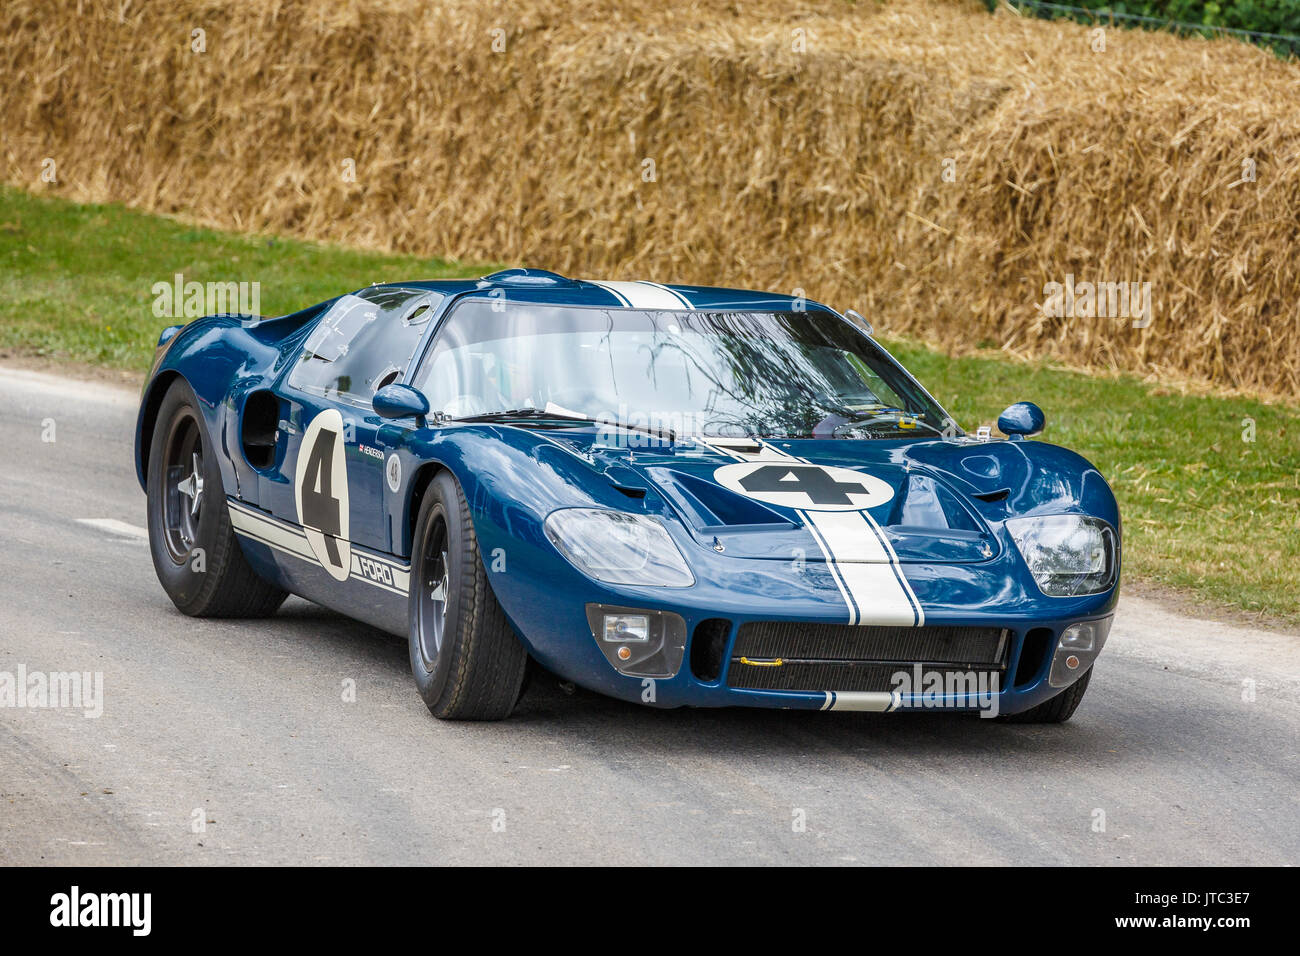 ford gt 40 stock photos ford gt 40 stock images alamy. Black Bedroom Furniture Sets. Home Design Ideas